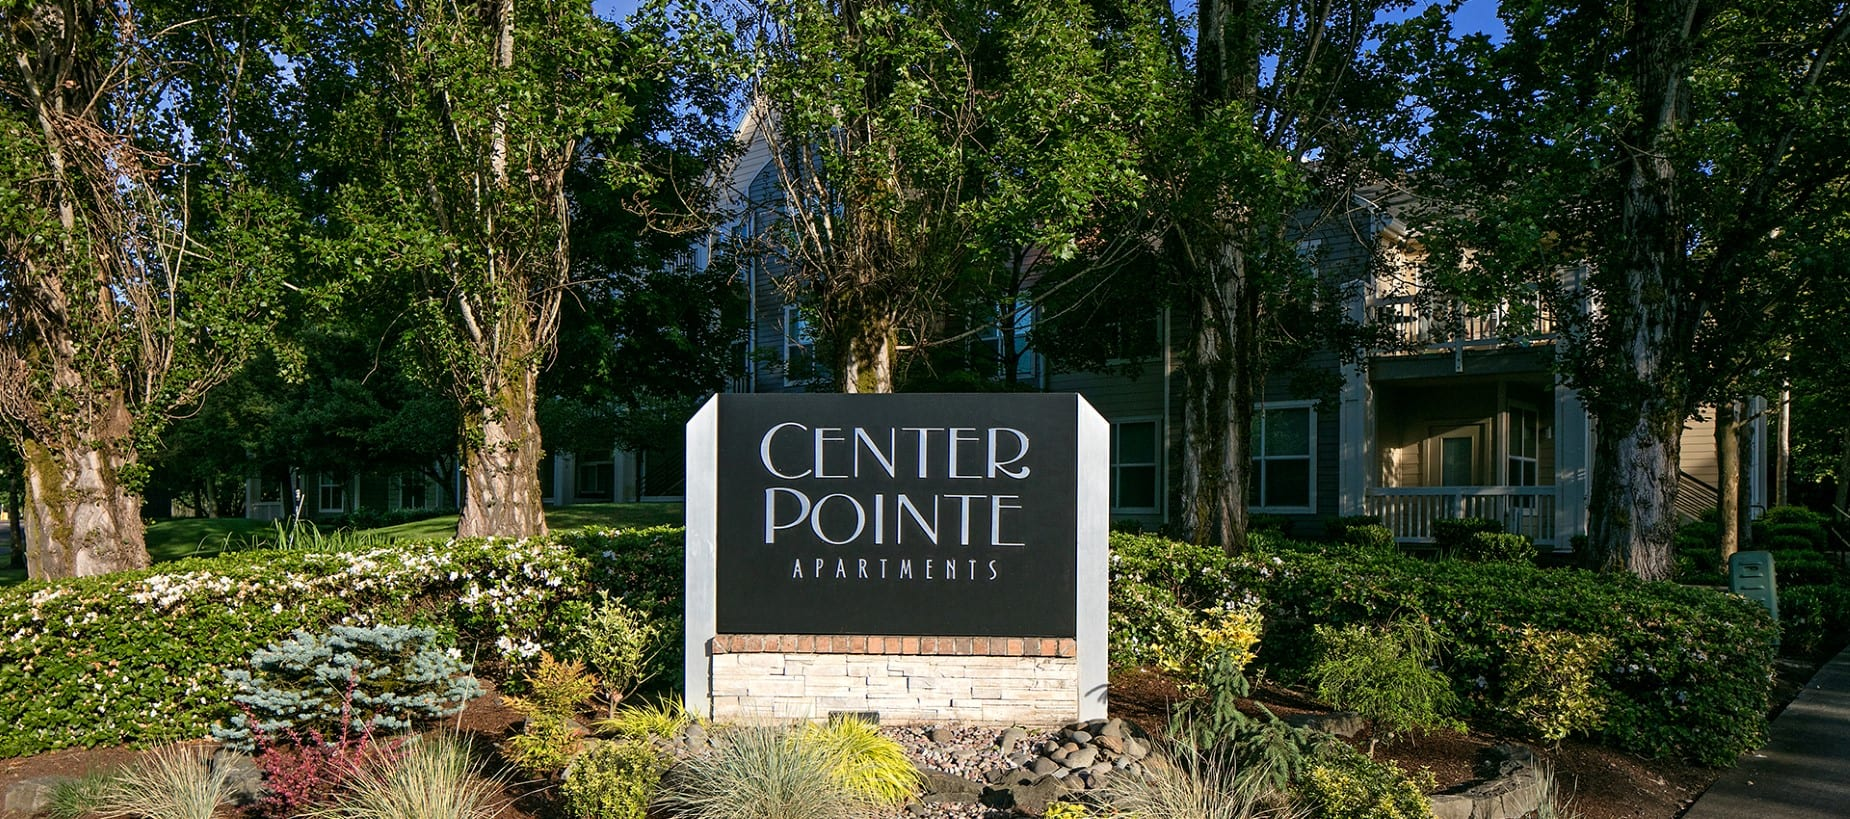 Signage at Center Pointe Apartment Homes in Beaverton, Oregon